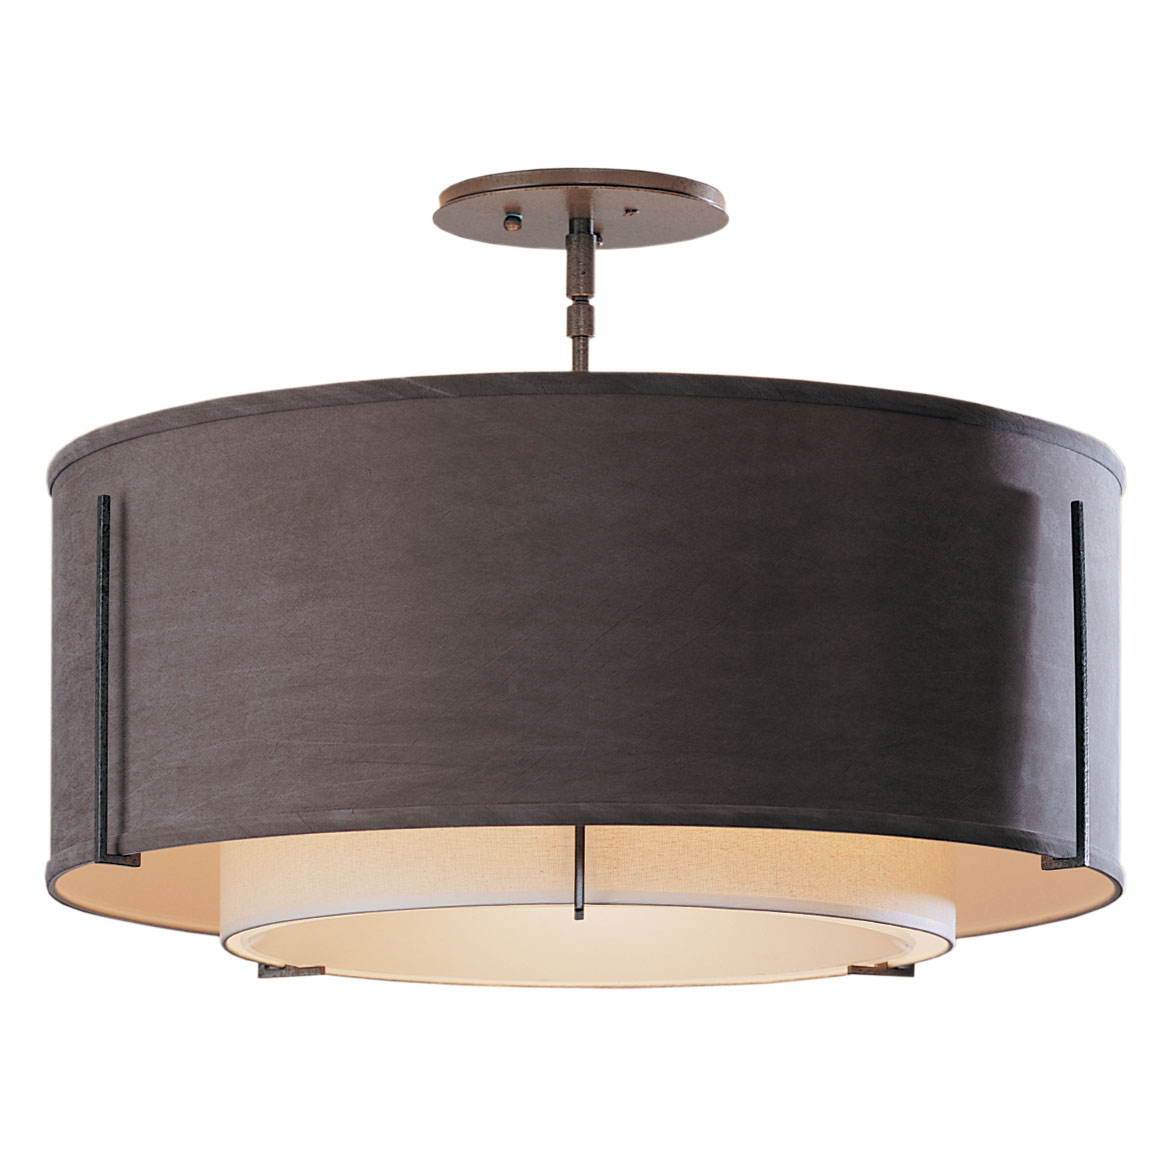 Exos round double shade semi flush ceiling light by hubbardton forge exos round double shade semi flush ceiling light by hubbardton forge 126503 1100 aloadofball Images